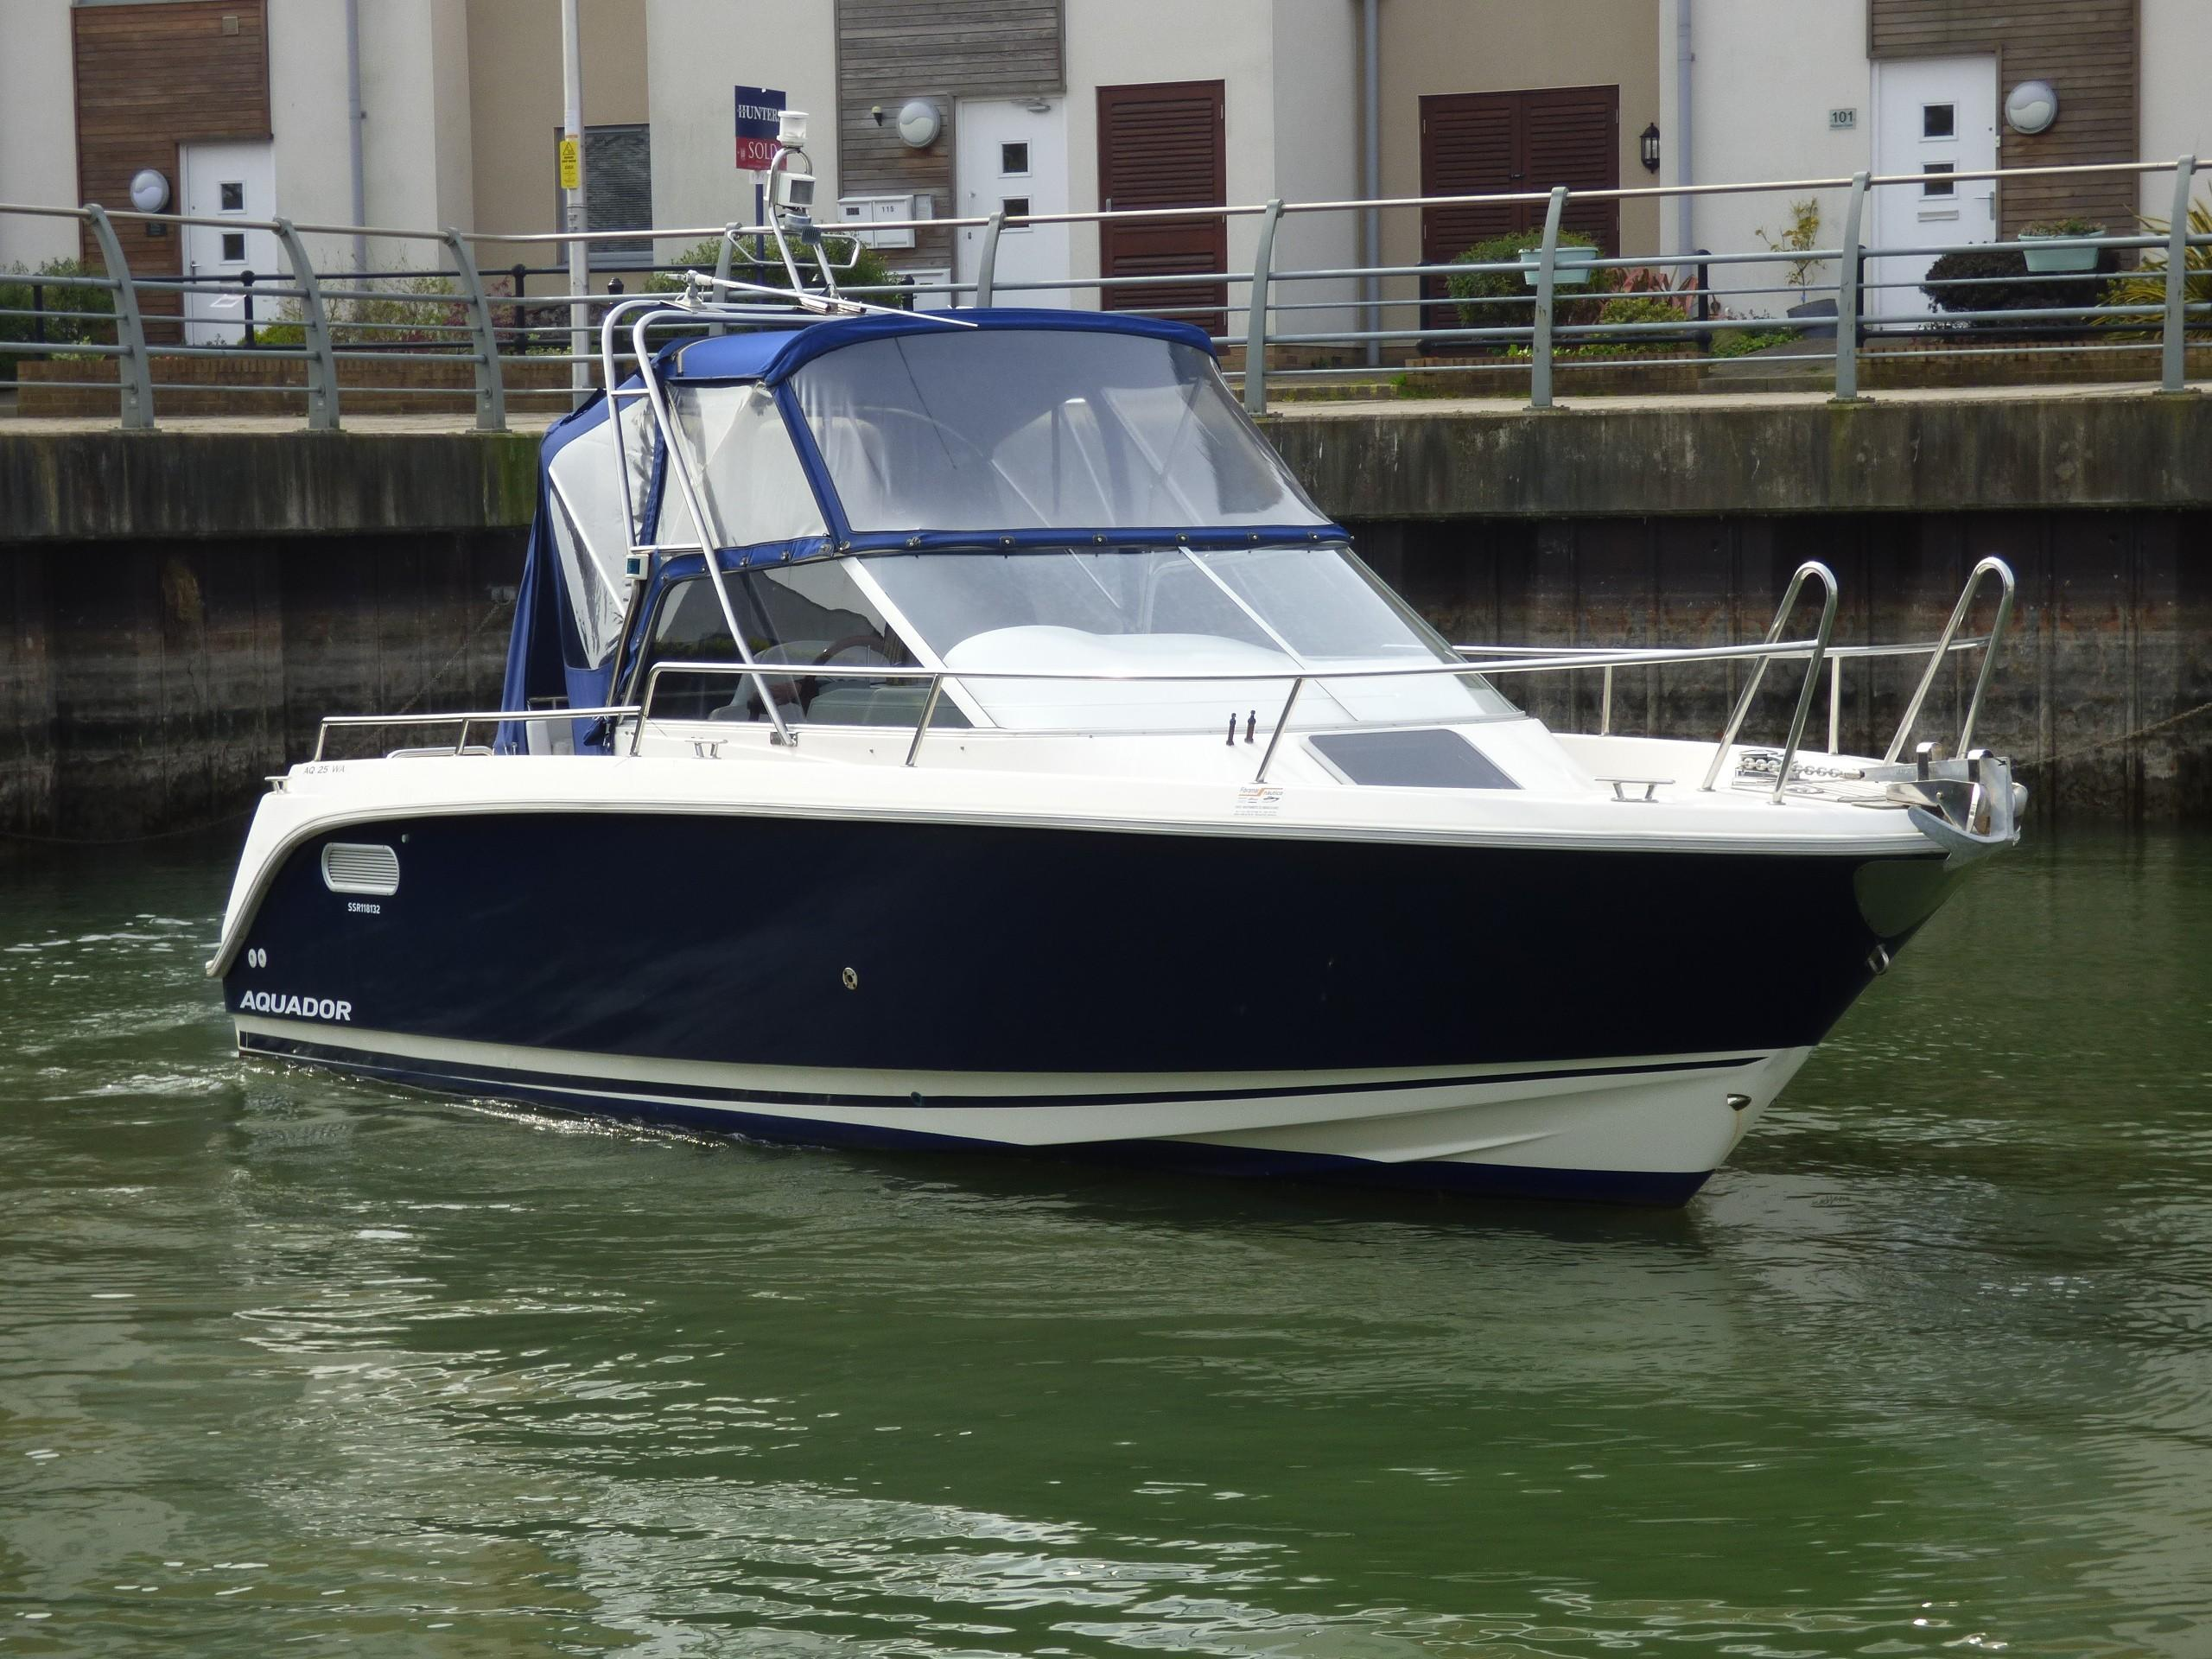 Aquador 25 Walkaround